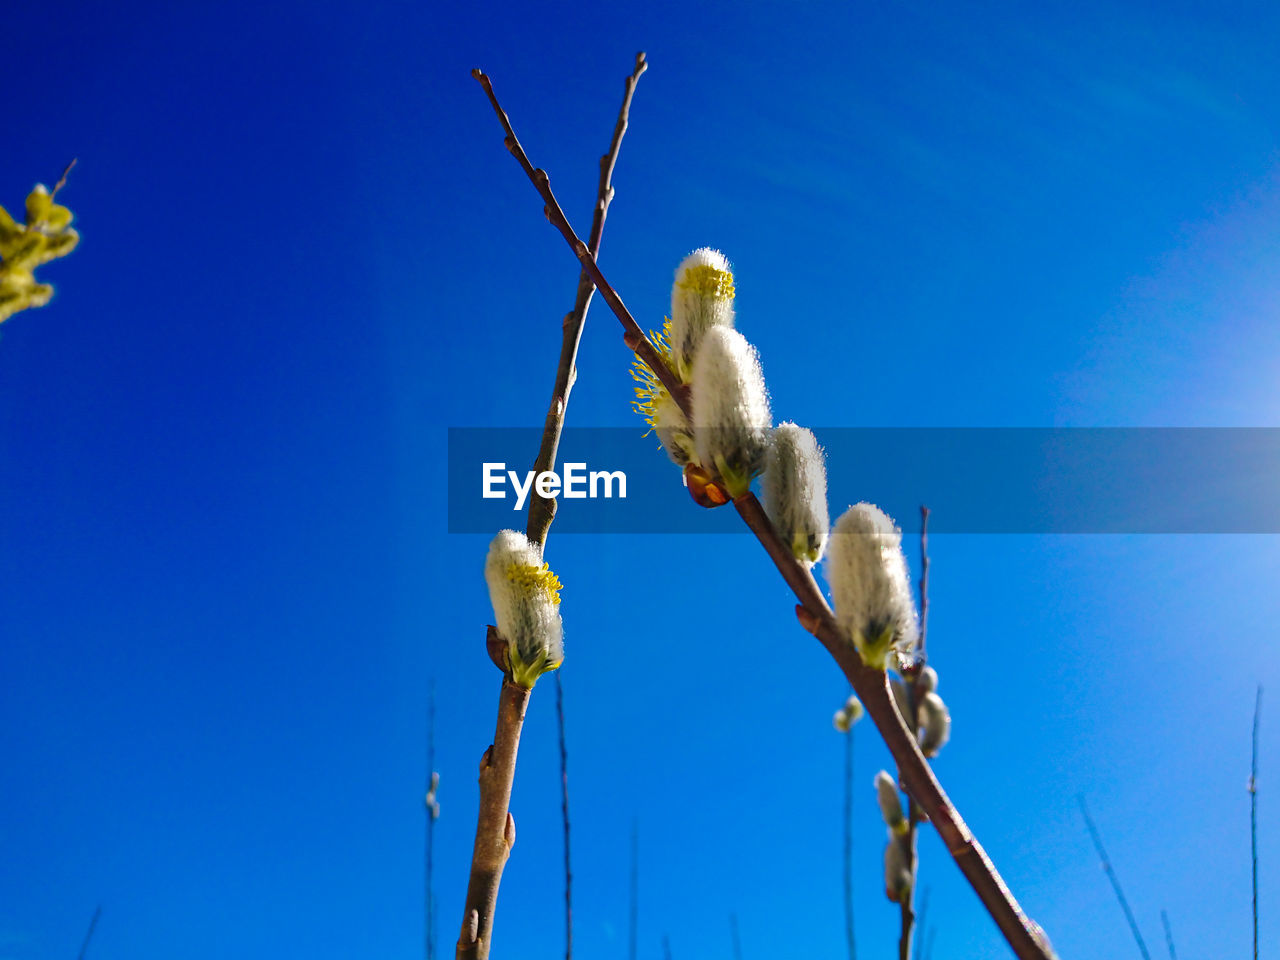 low angle view, sky, blue, animal, bird, vertebrate, animal themes, animal wildlife, animals in the wild, nature, plant, no people, clear sky, branch, tree, day, one animal, perching, outdoors, beauty in nature